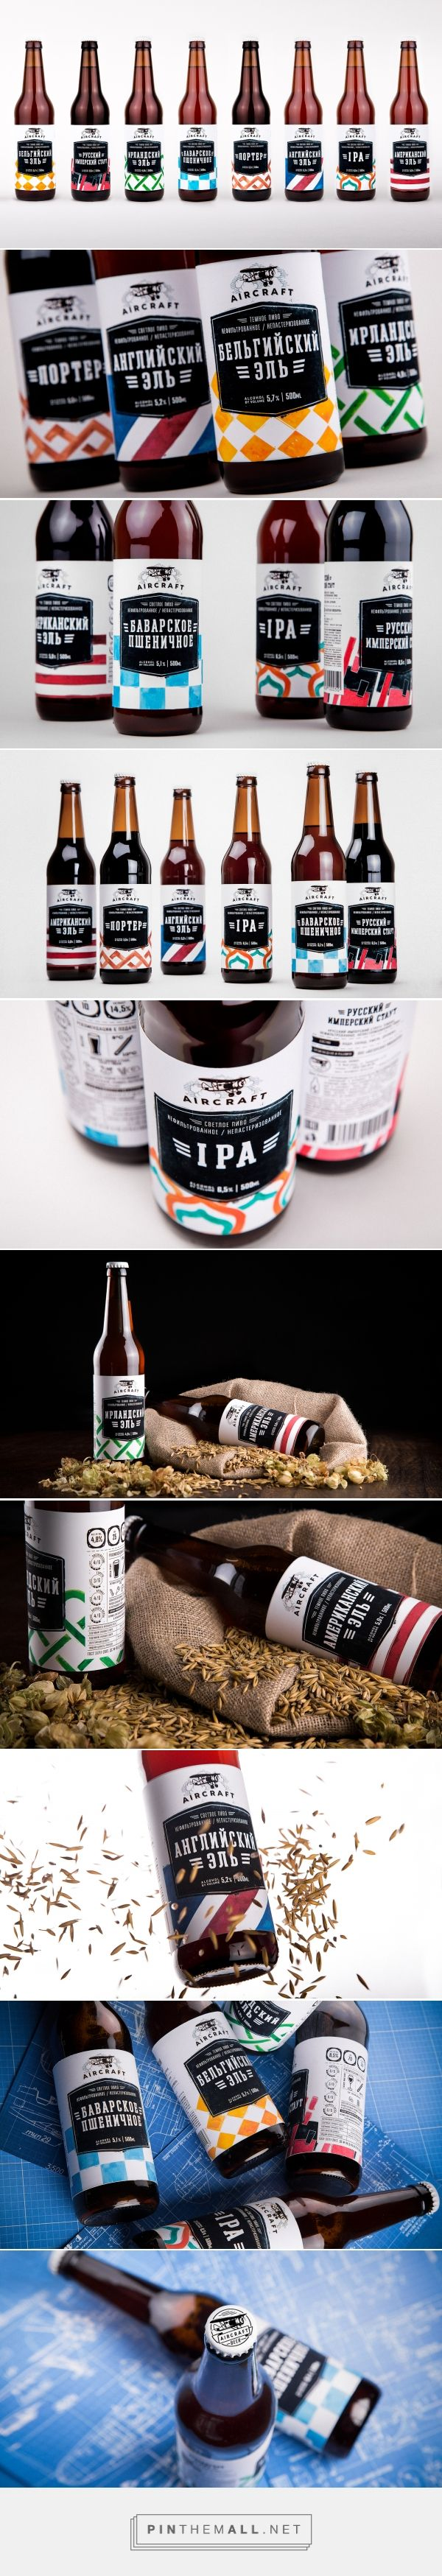 Aircraft Craft Beer - Packaging of the World - Creative Package Design Gallery - http://www.packagingoftheworld.com/2017/06/aircraft-craft-beer.html